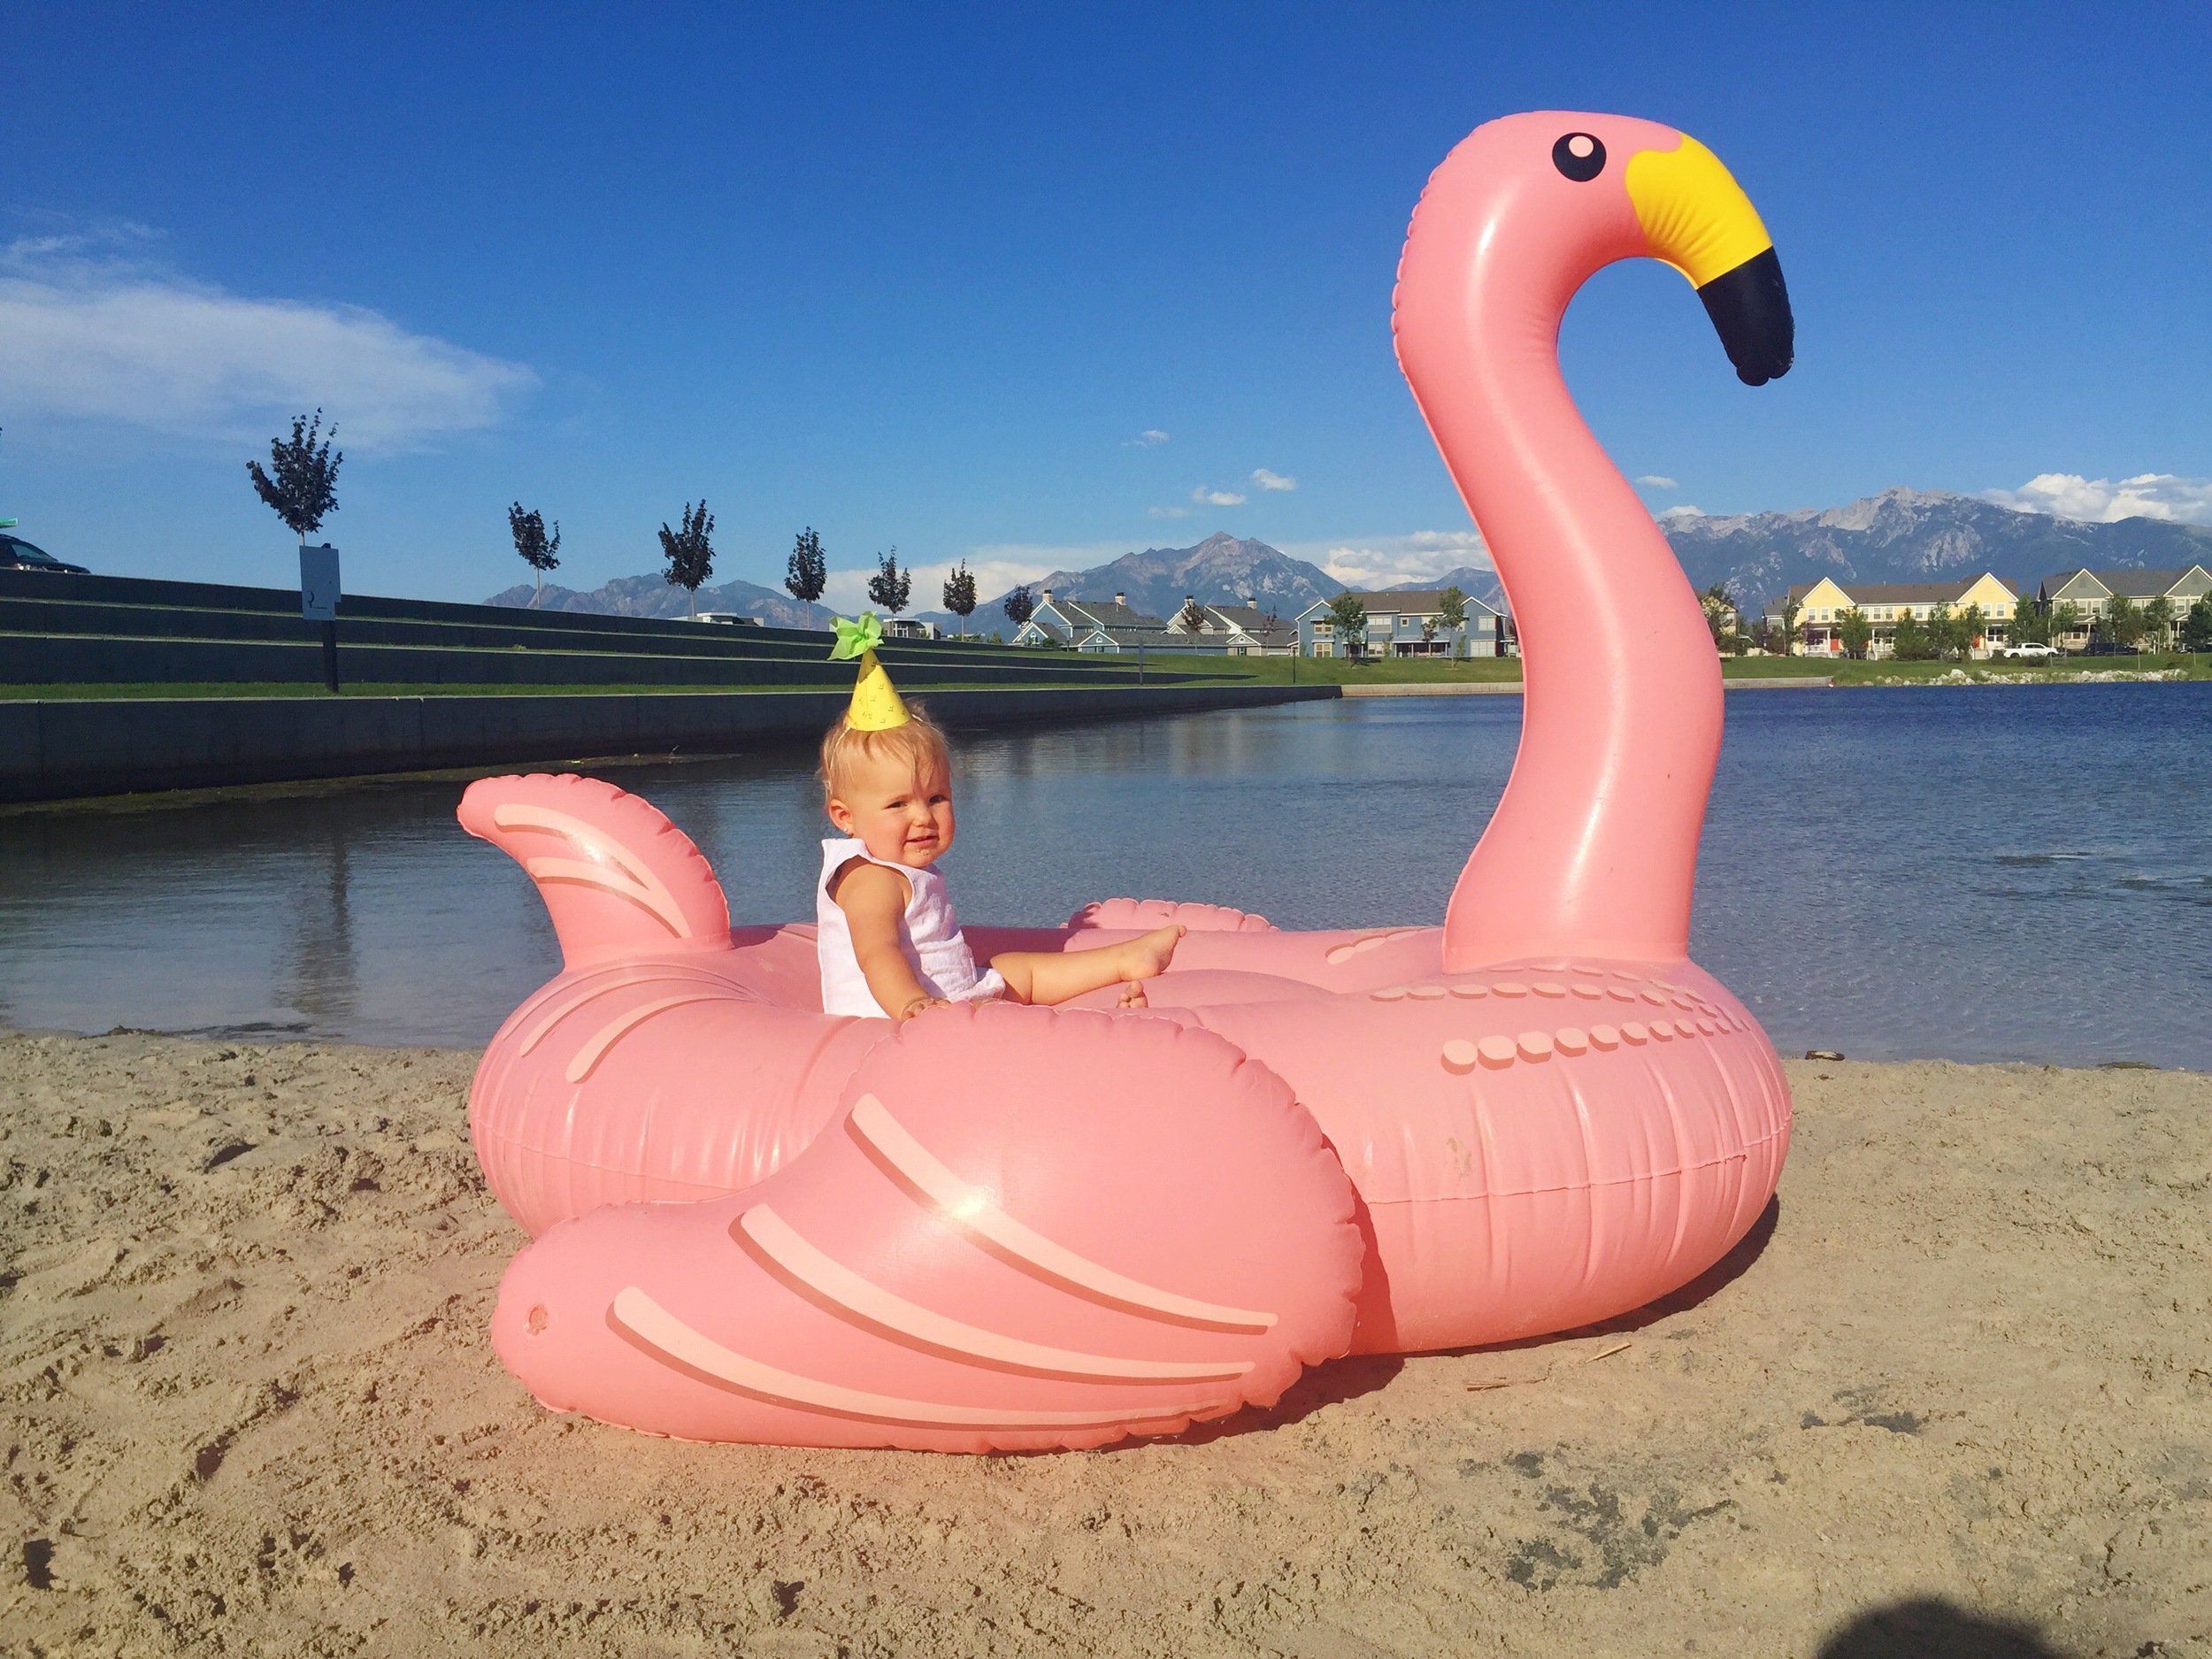 If you're ever in need of amazing pool floaties, like this pretty flamingo, Urban Outfitters has you covered. But don't buy them all so there are none left for me!